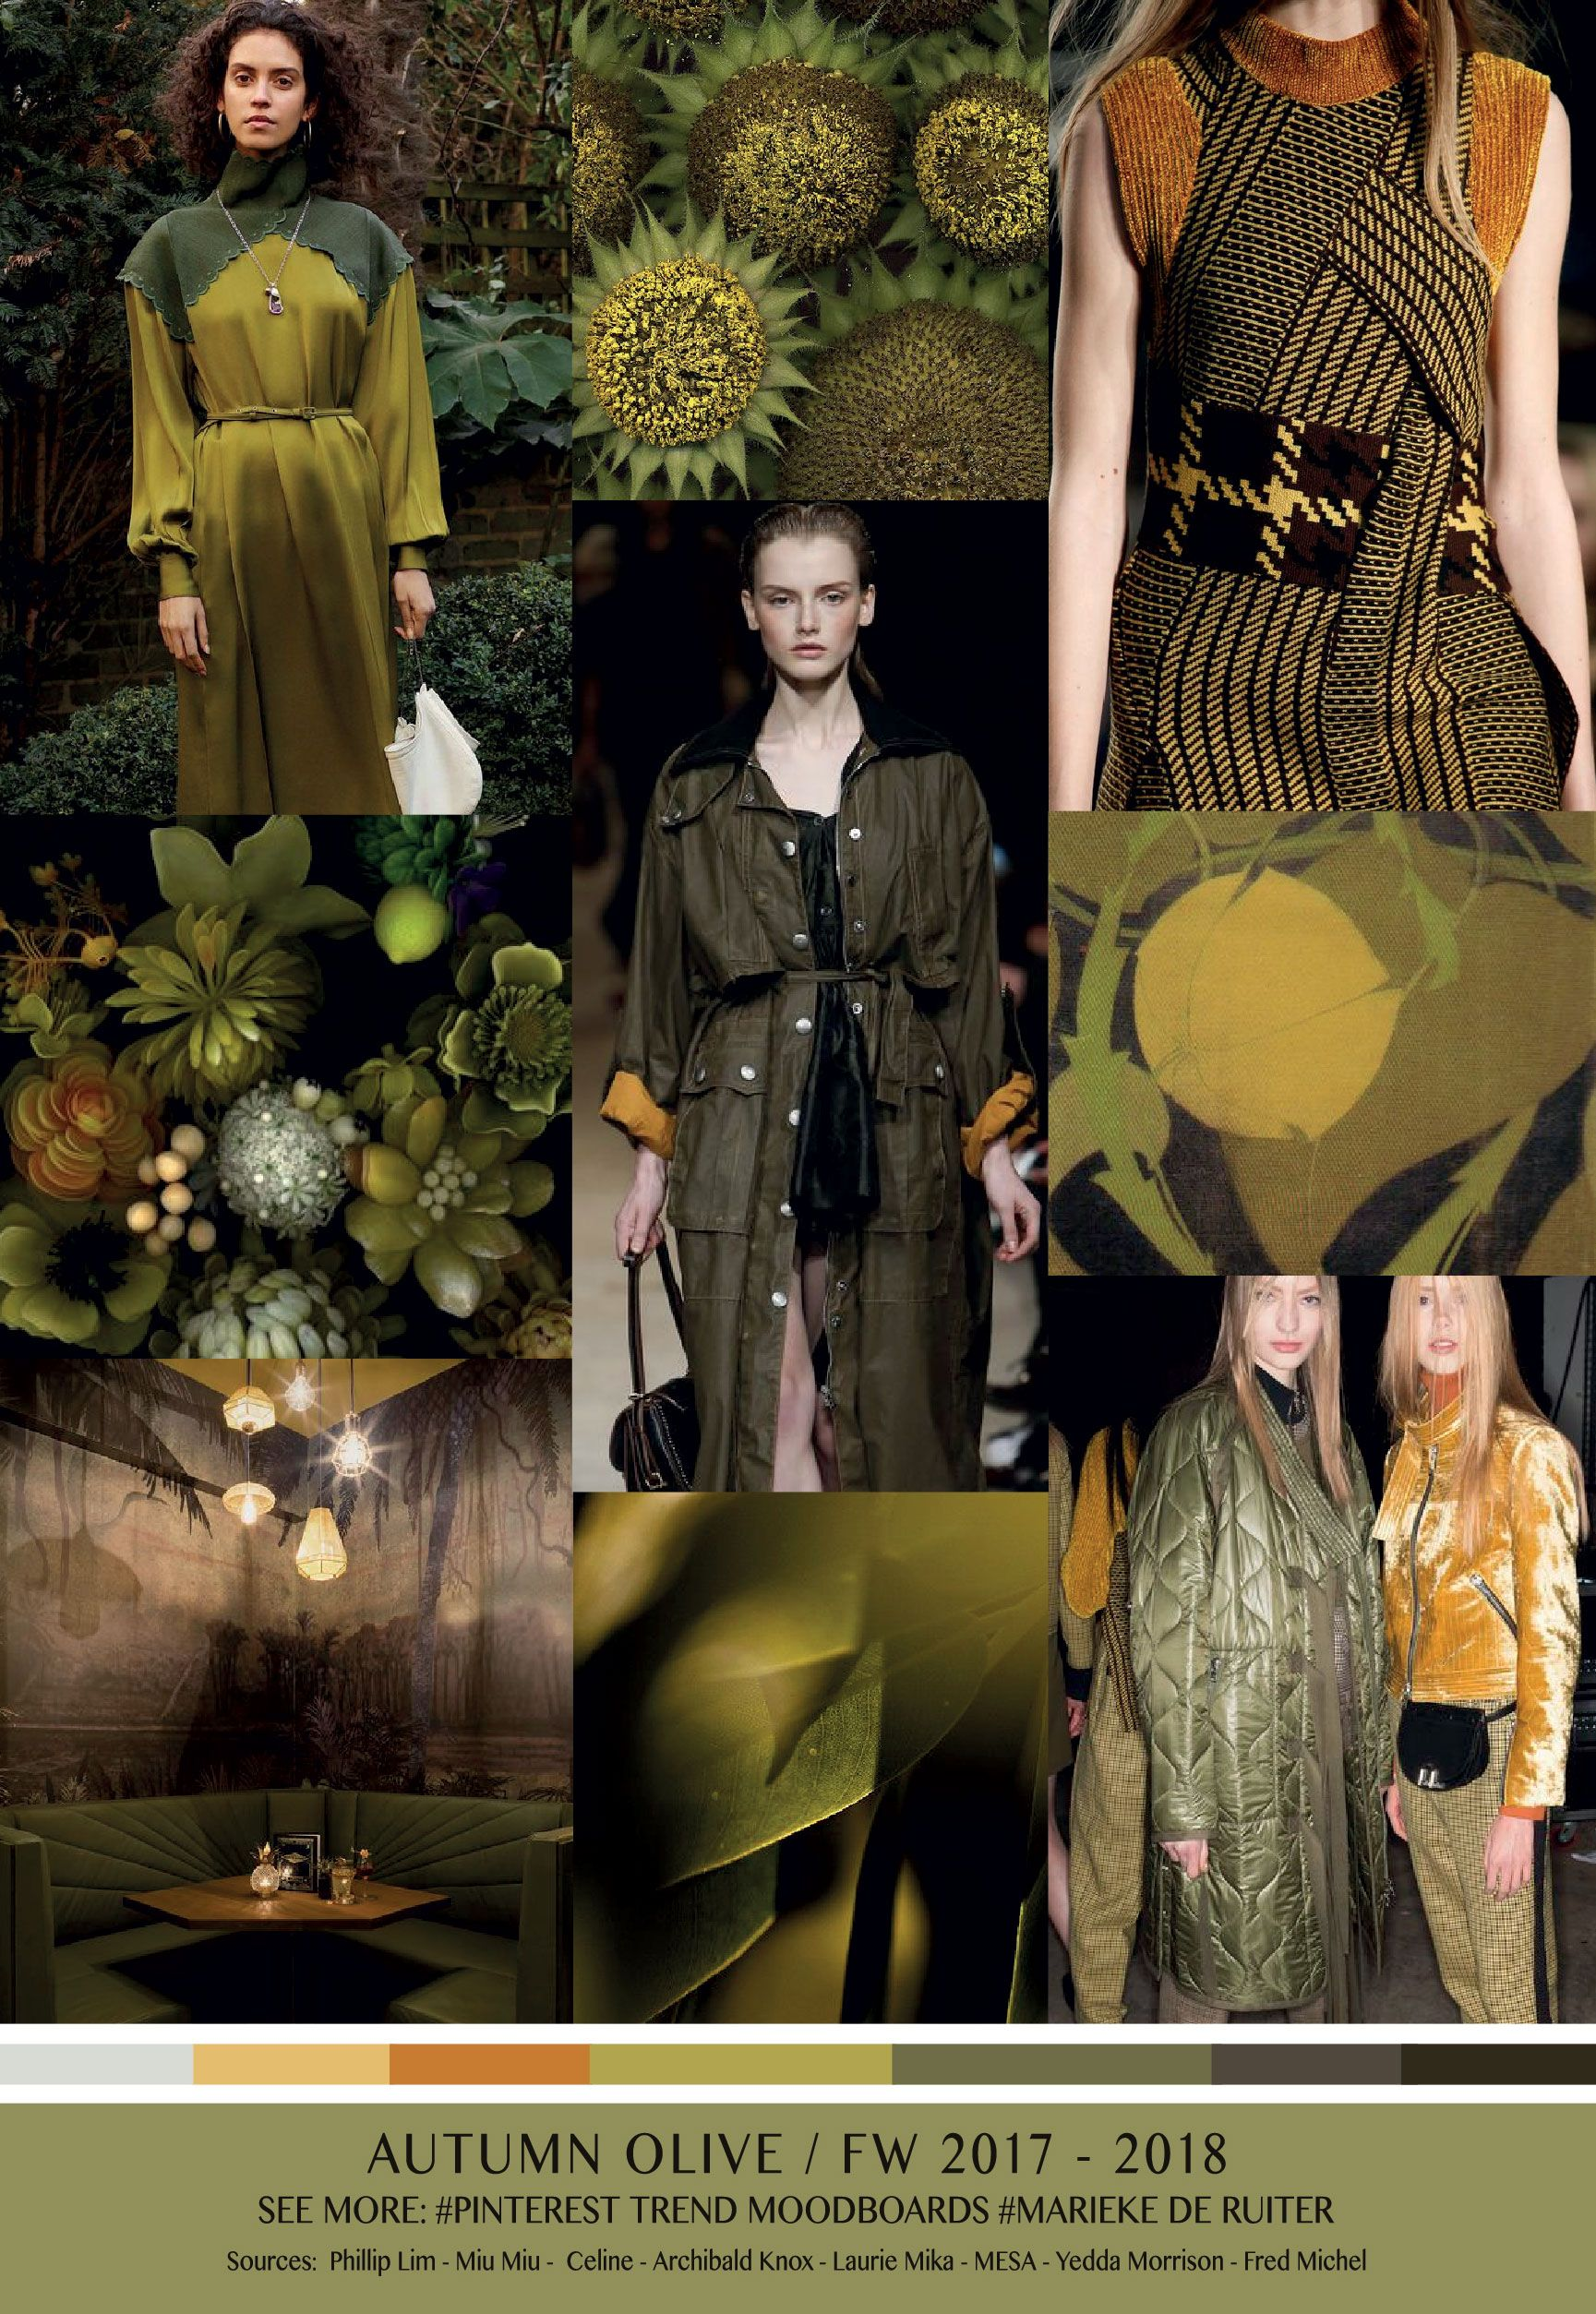 Autumn Olive Trend Fw 2017 2018 Marieke De Ruiter Trends Pinterest Autumn Winter